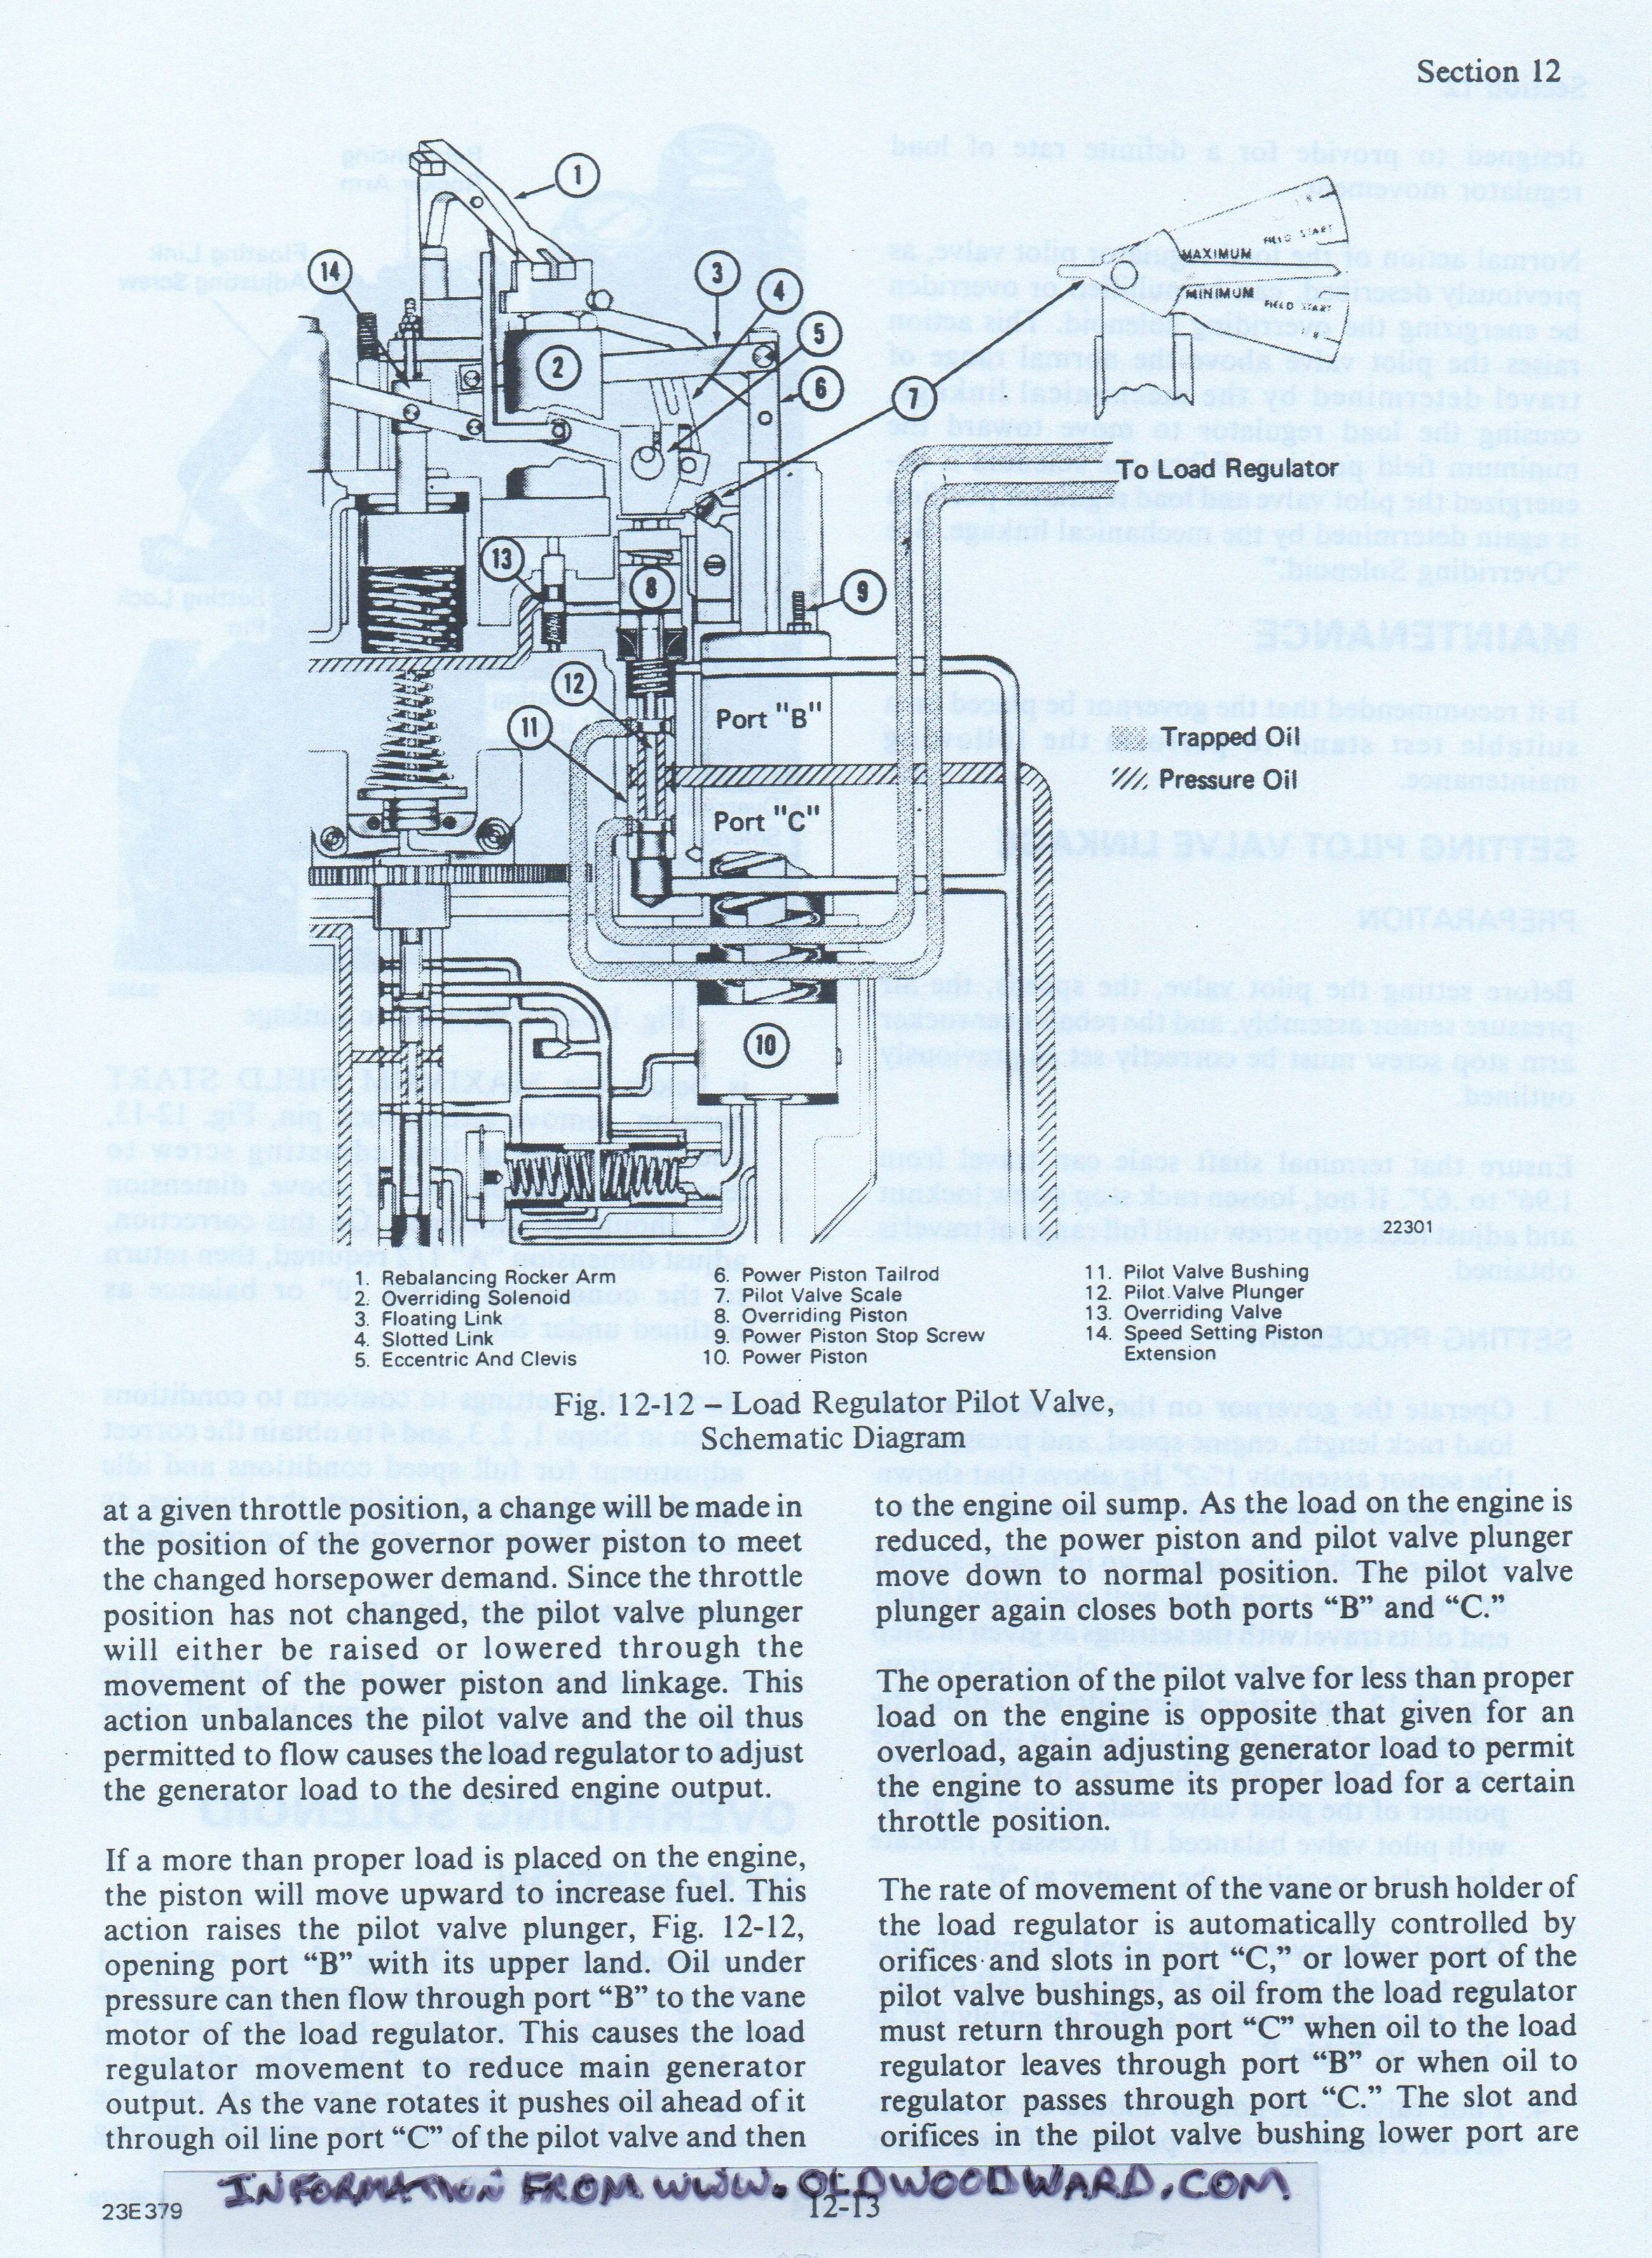 another schematic from an emd diesel engine operating manual showing the woodward pg series governor system  [ 2357 x 3222 Pixel ]